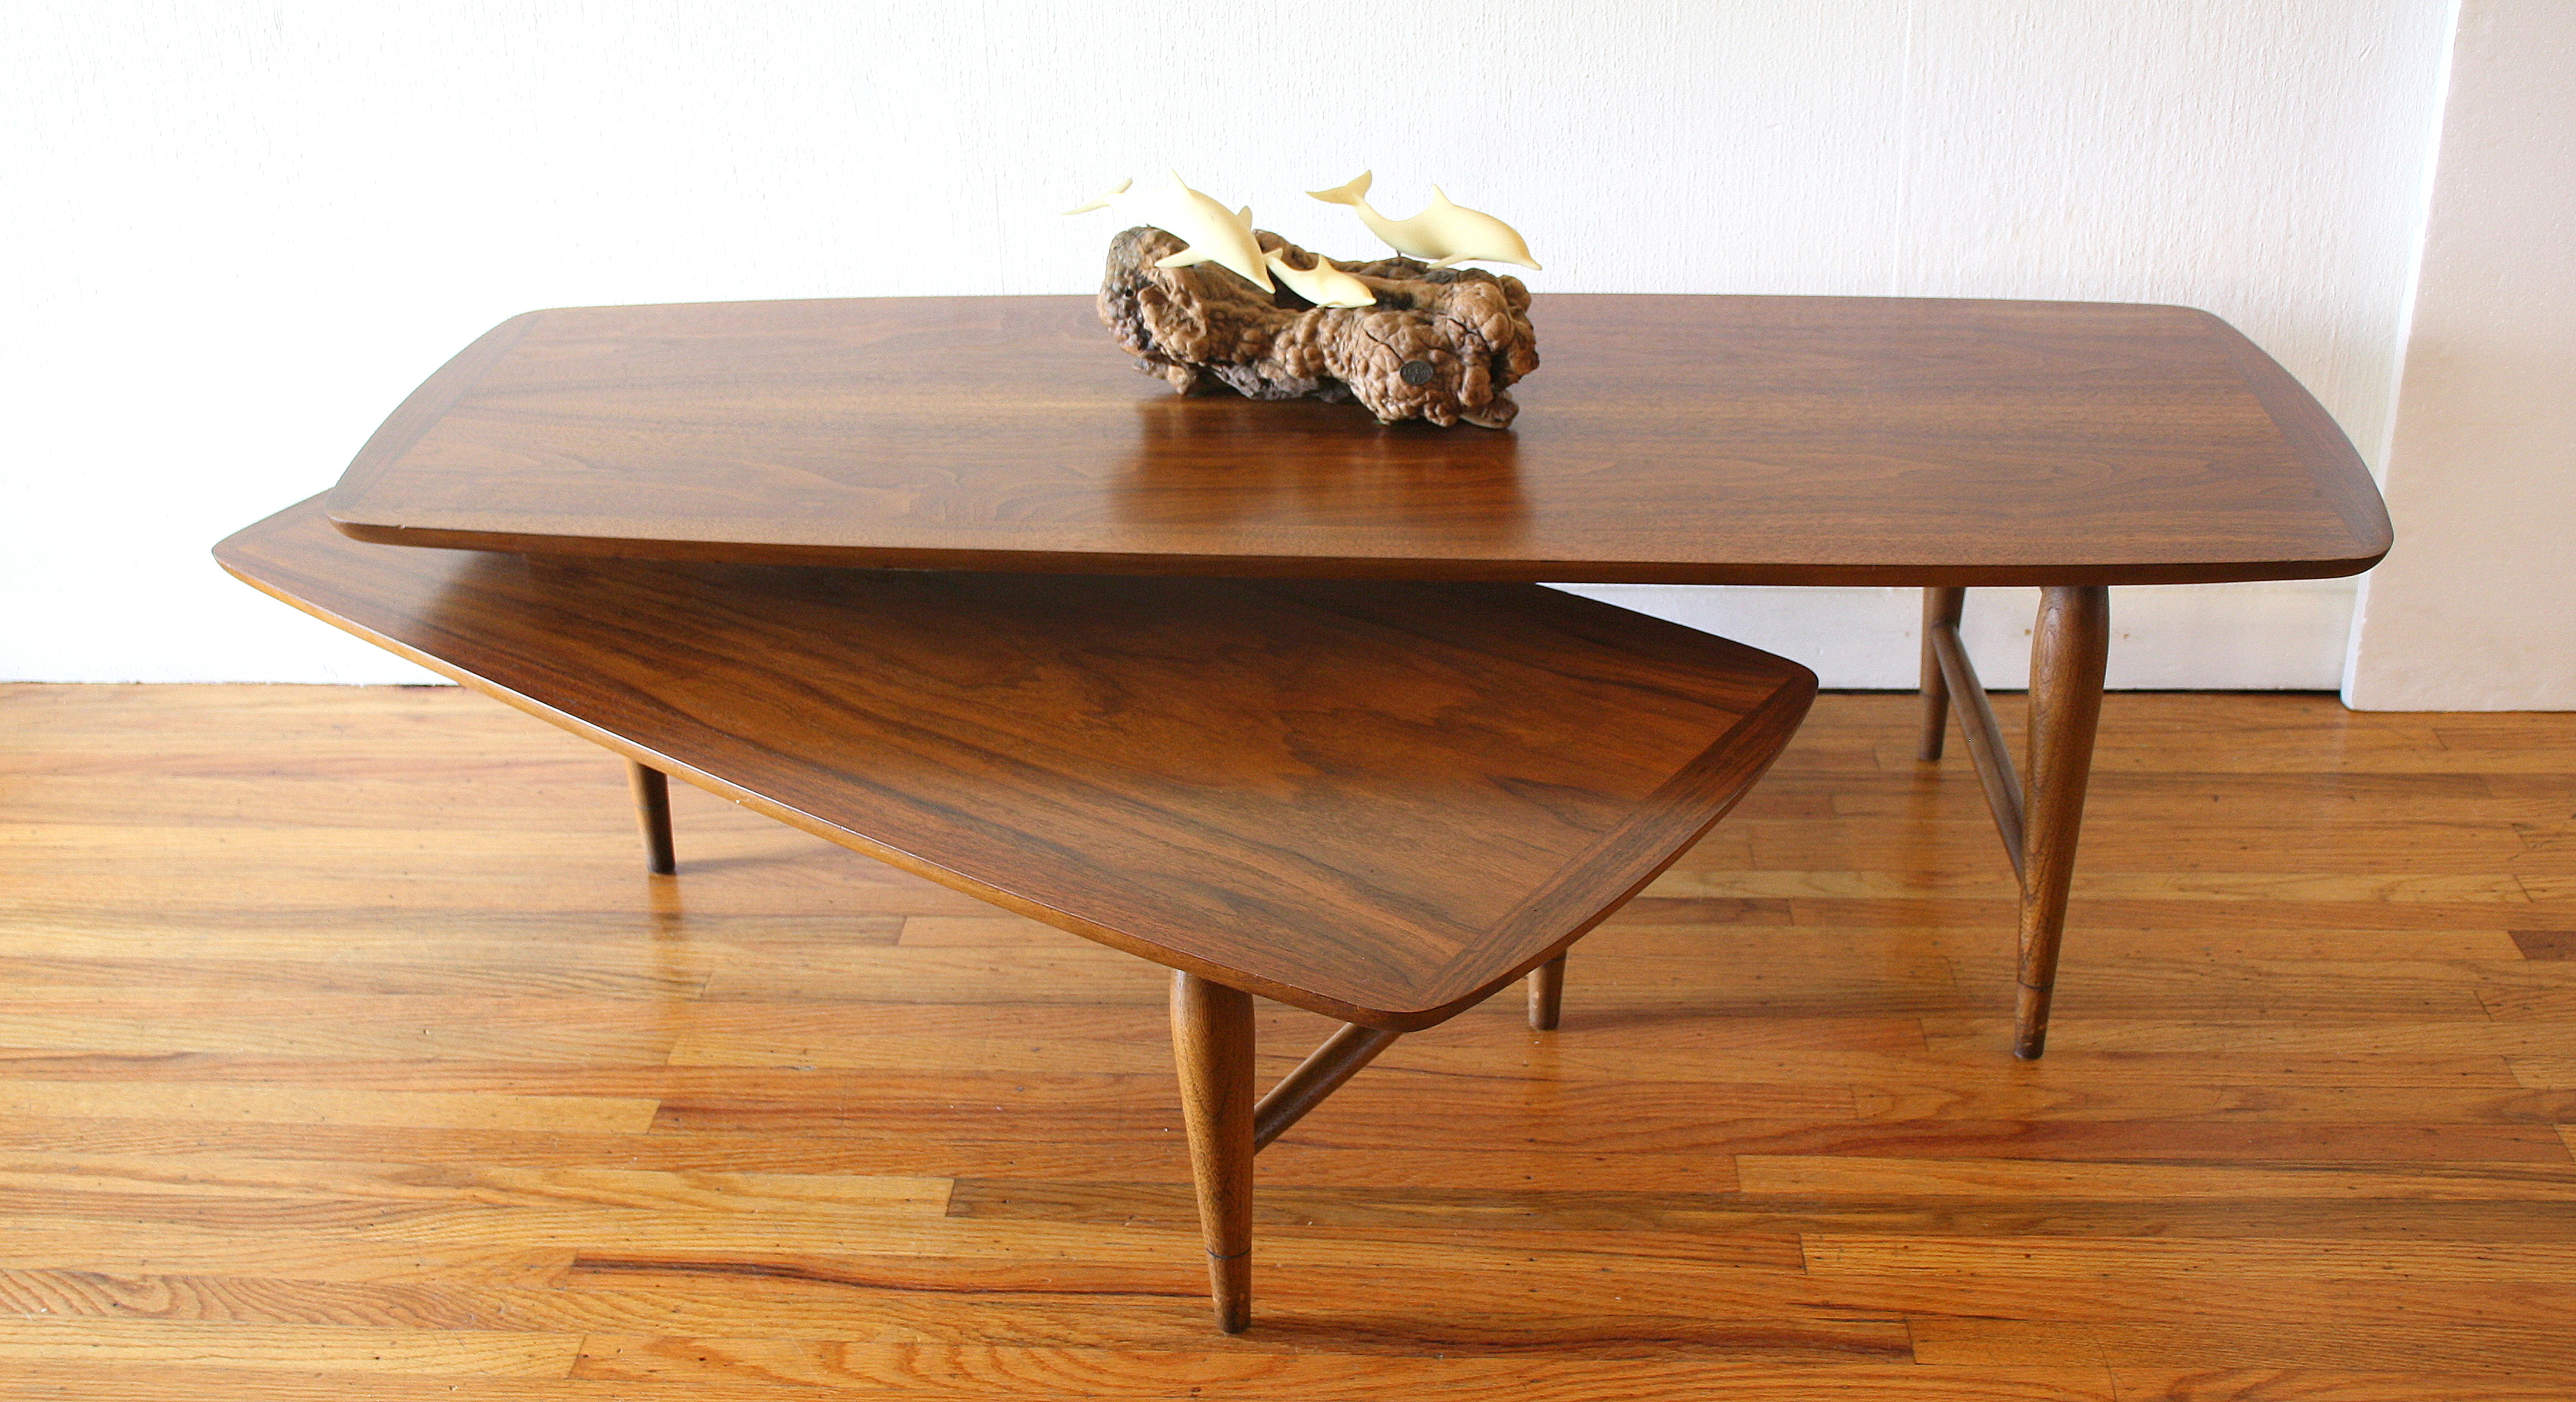 Outstanding Mcm Boomerang Coffee Table 1 Picked Vintage Evergreenethics Interior Chair Design Evergreenethicsorg